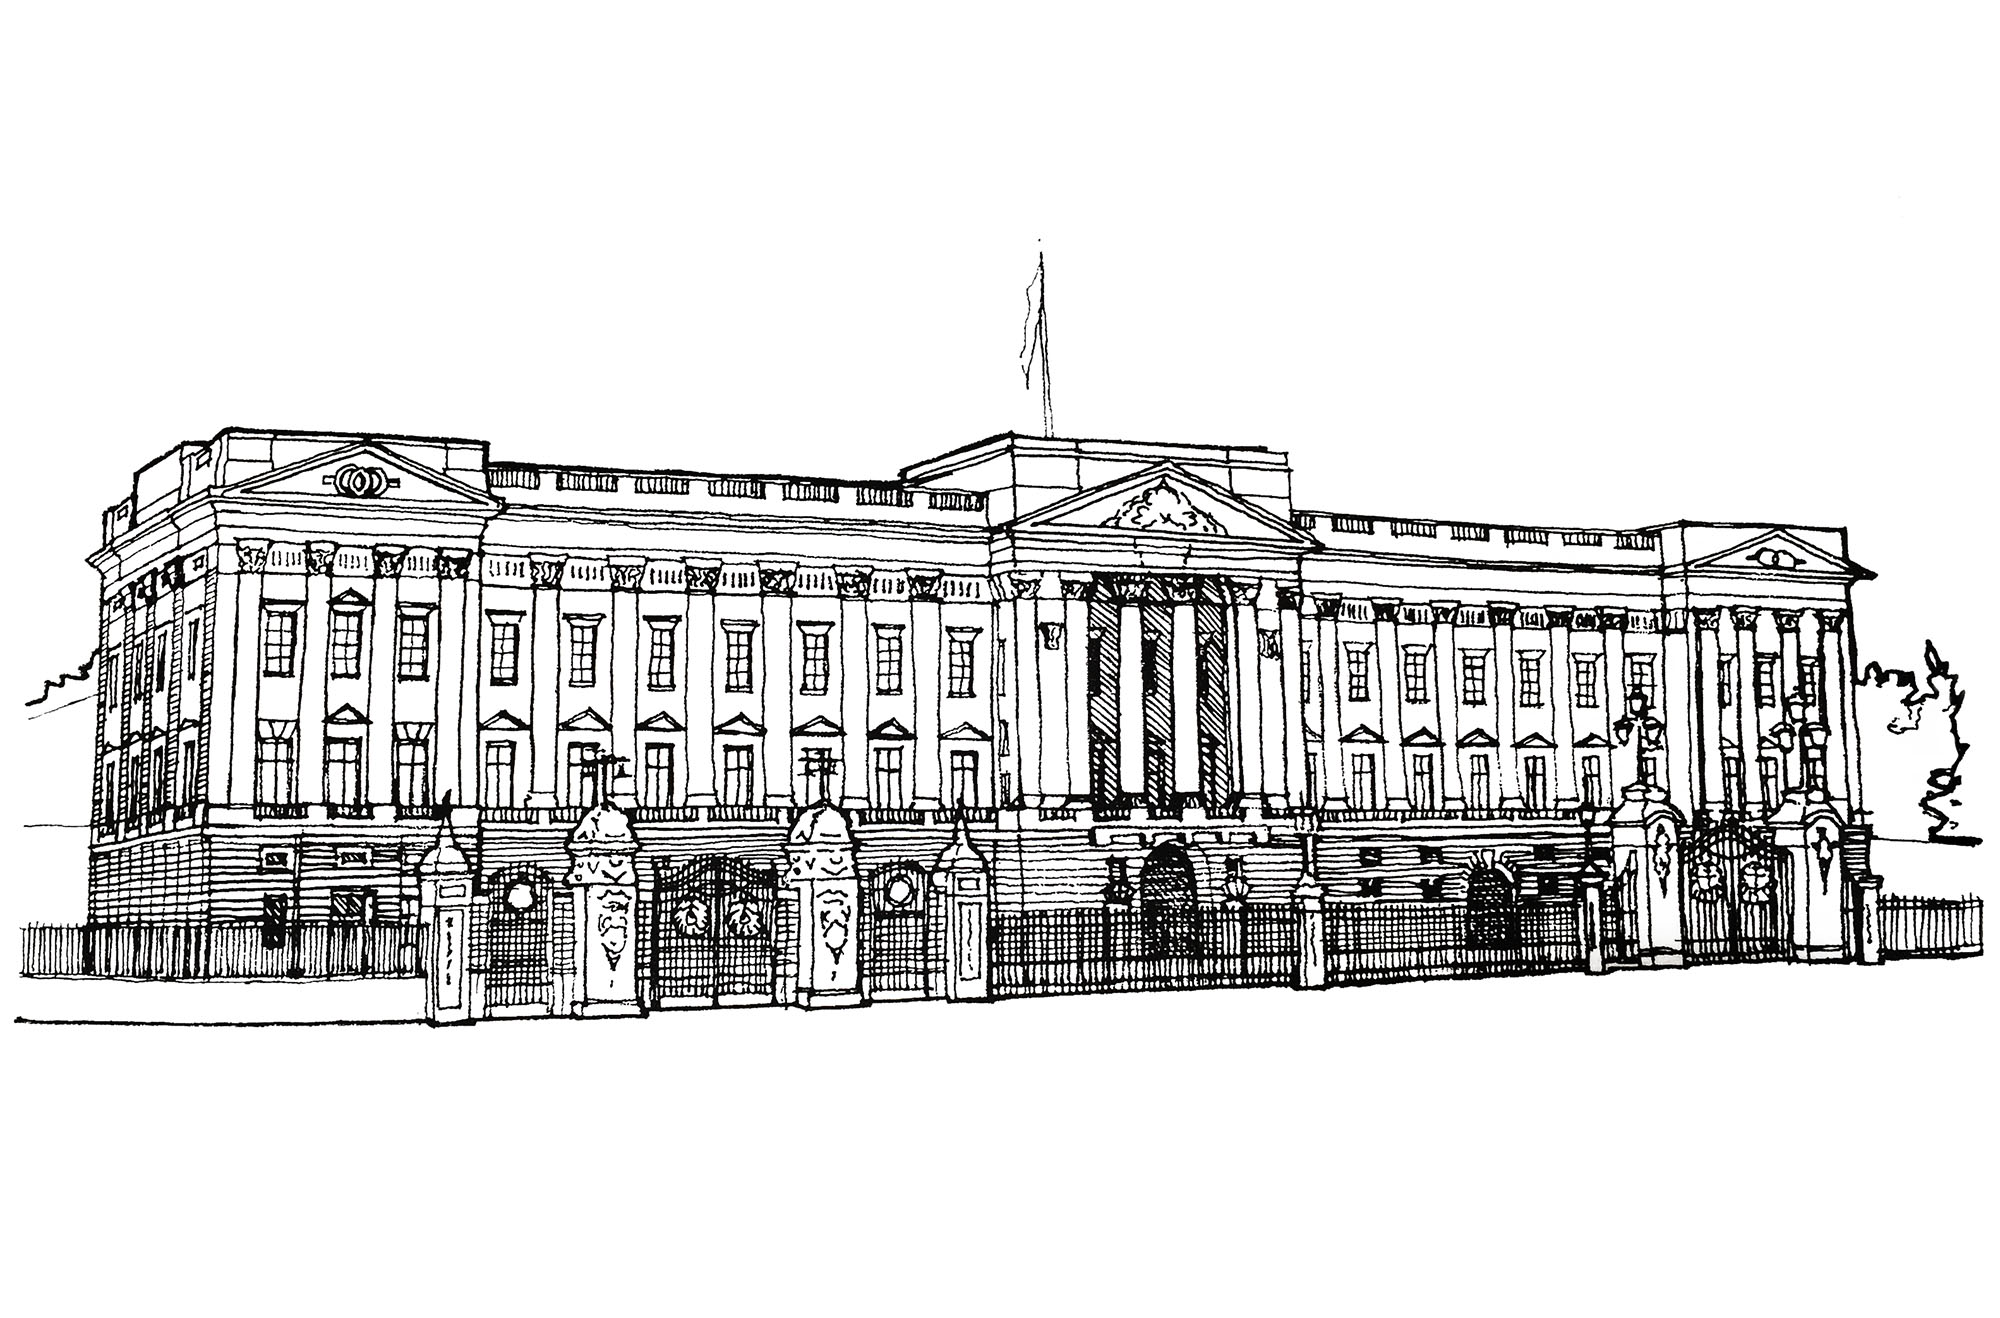 A 1820 illustration of Buckhingham Palace, London